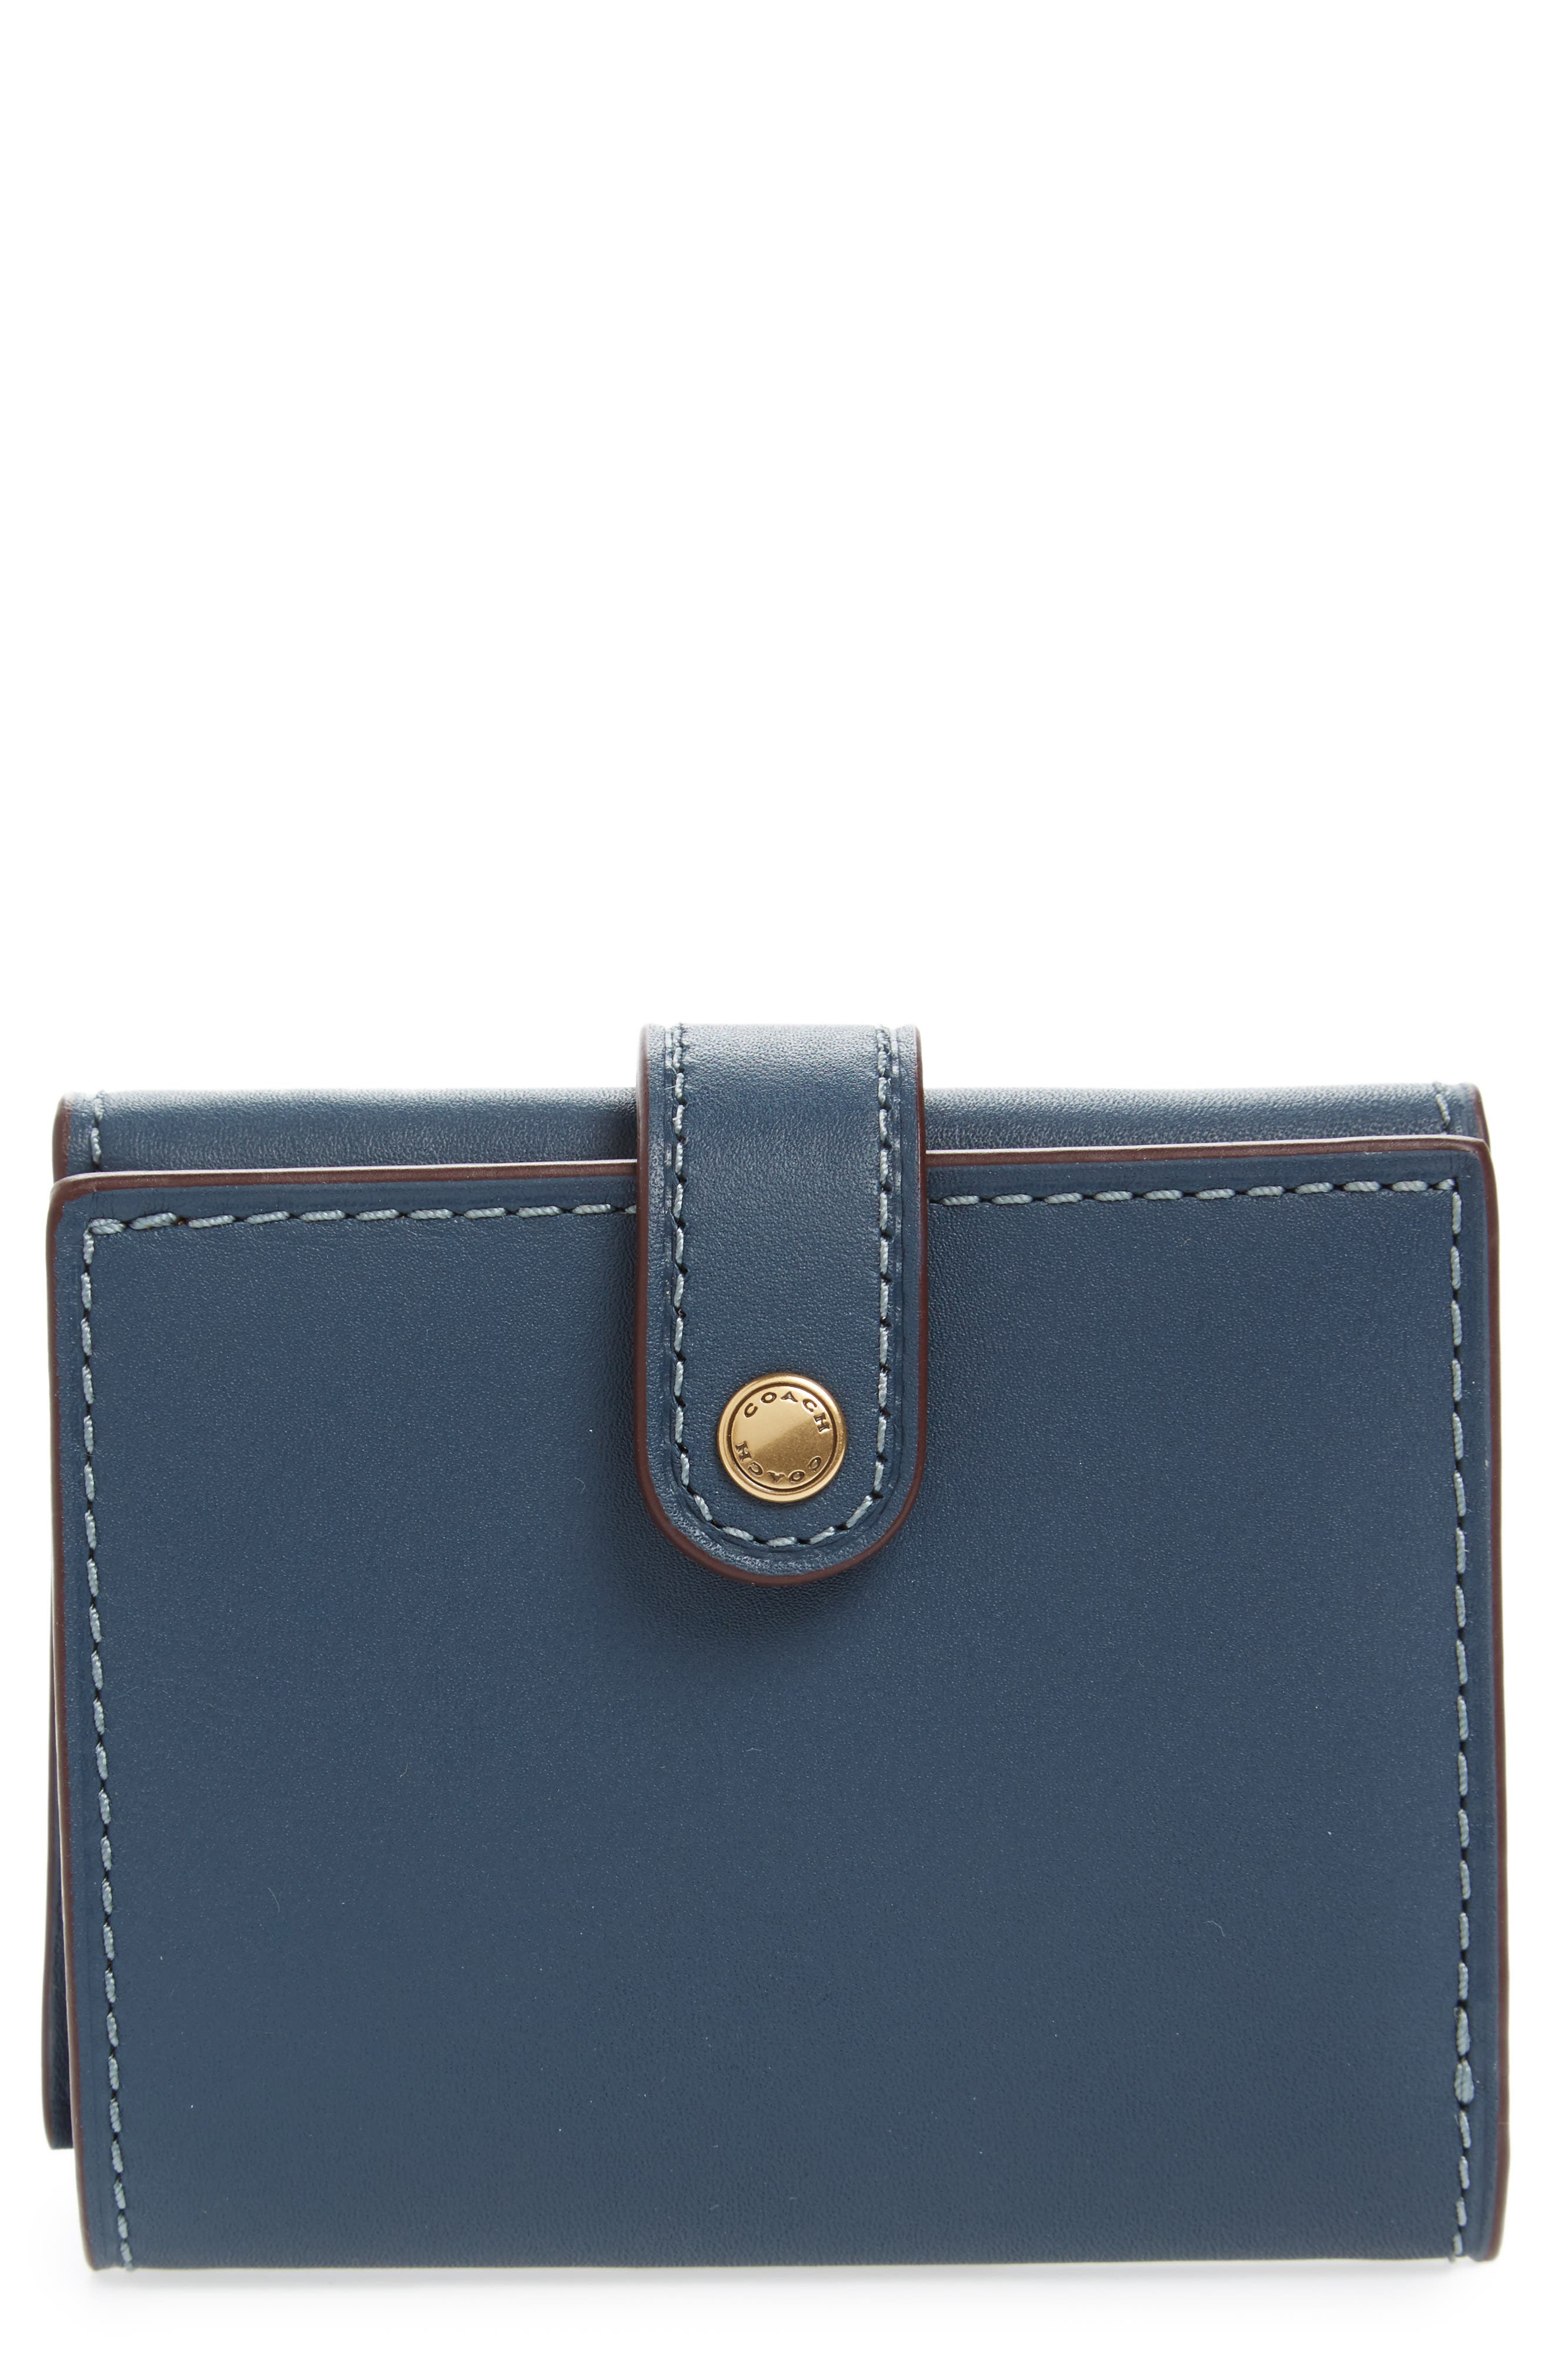 Small Leather Trifold Wallet,                         Main,                         color, 400